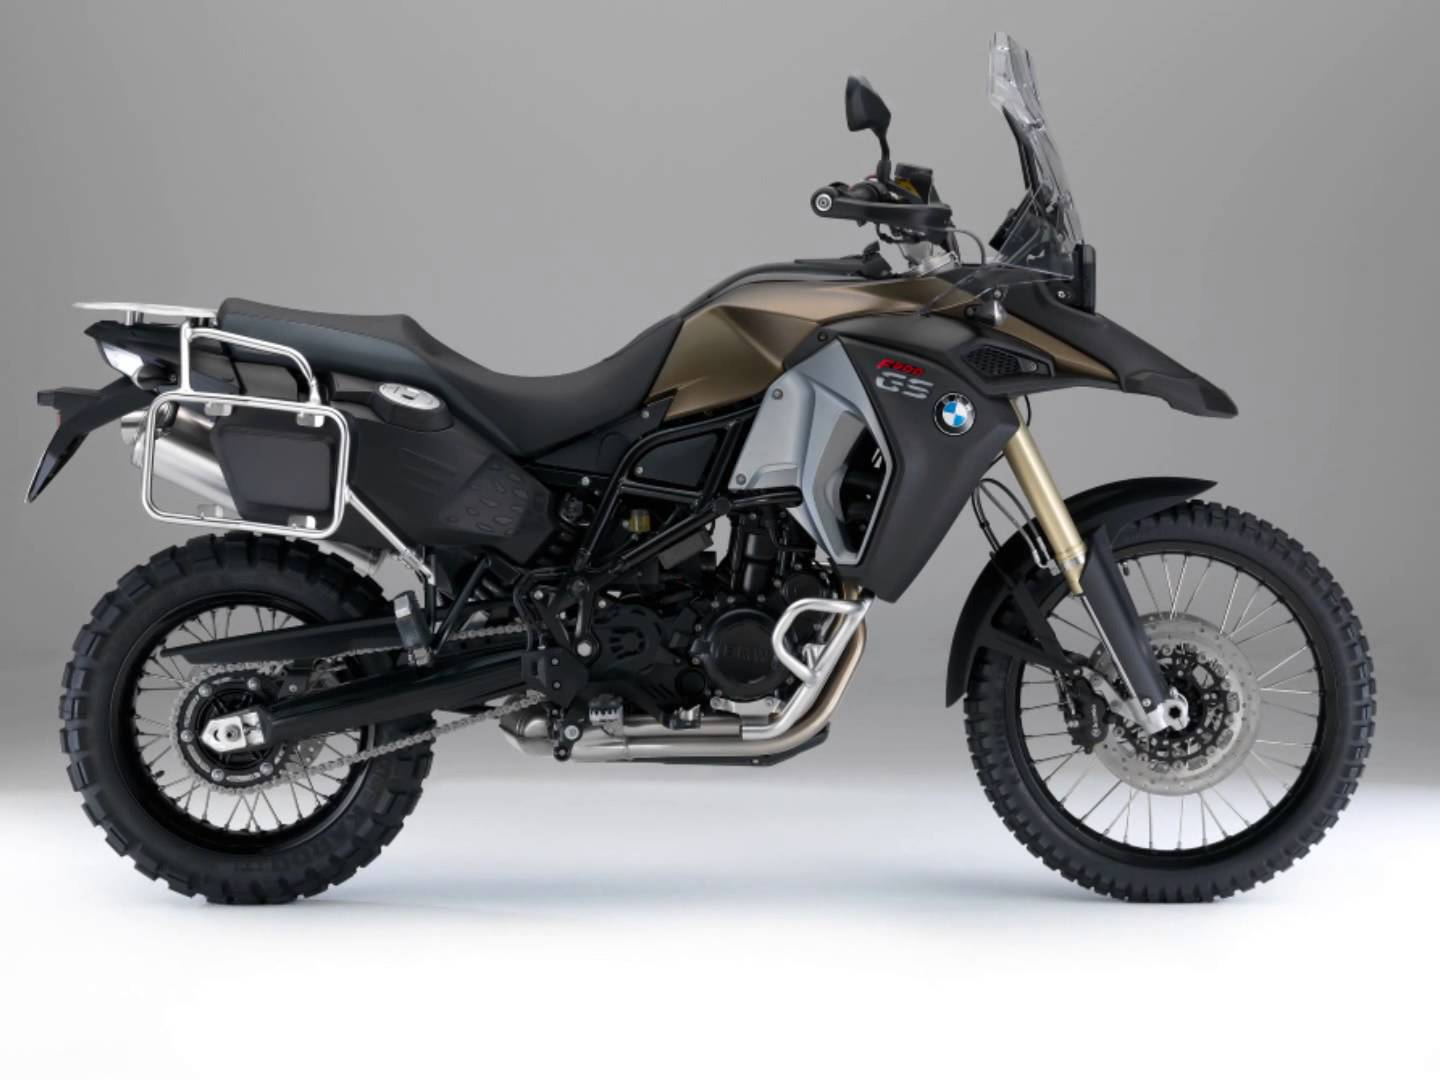 2012 Bmw F 800 Gs Triple Black Specs Images And Pricing